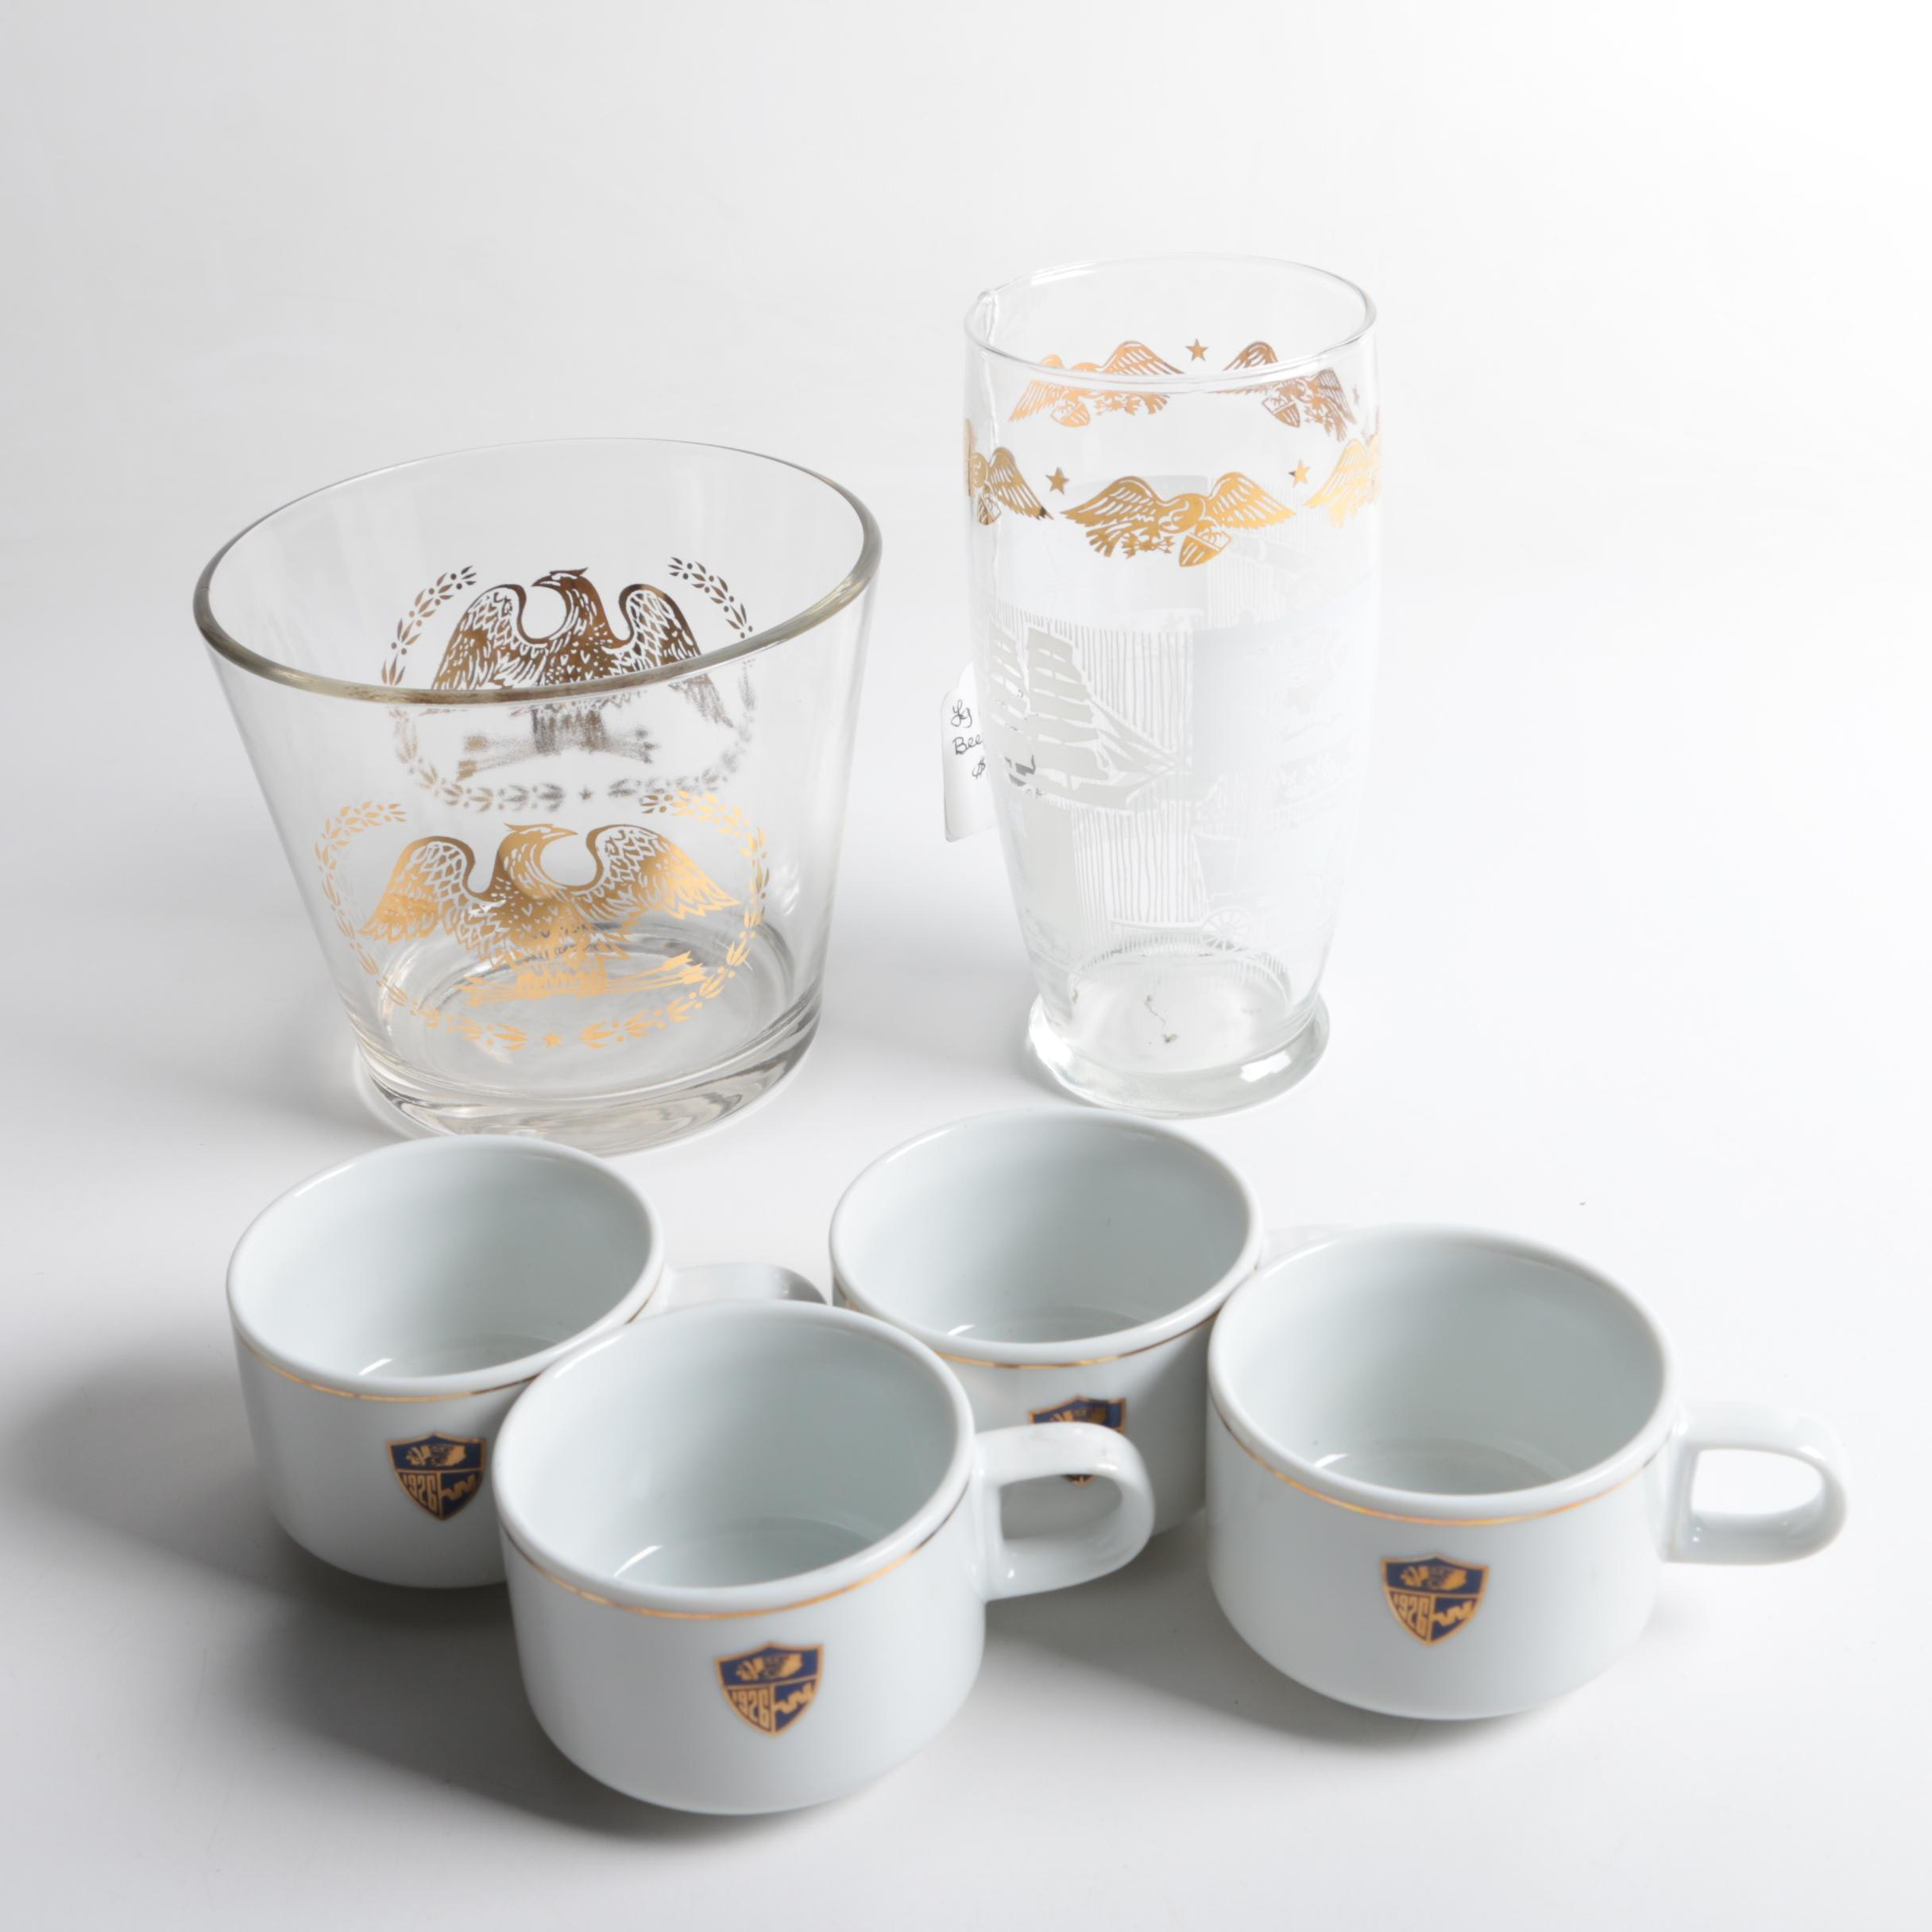 Abco Tableware Coffee Mugs and Glassware